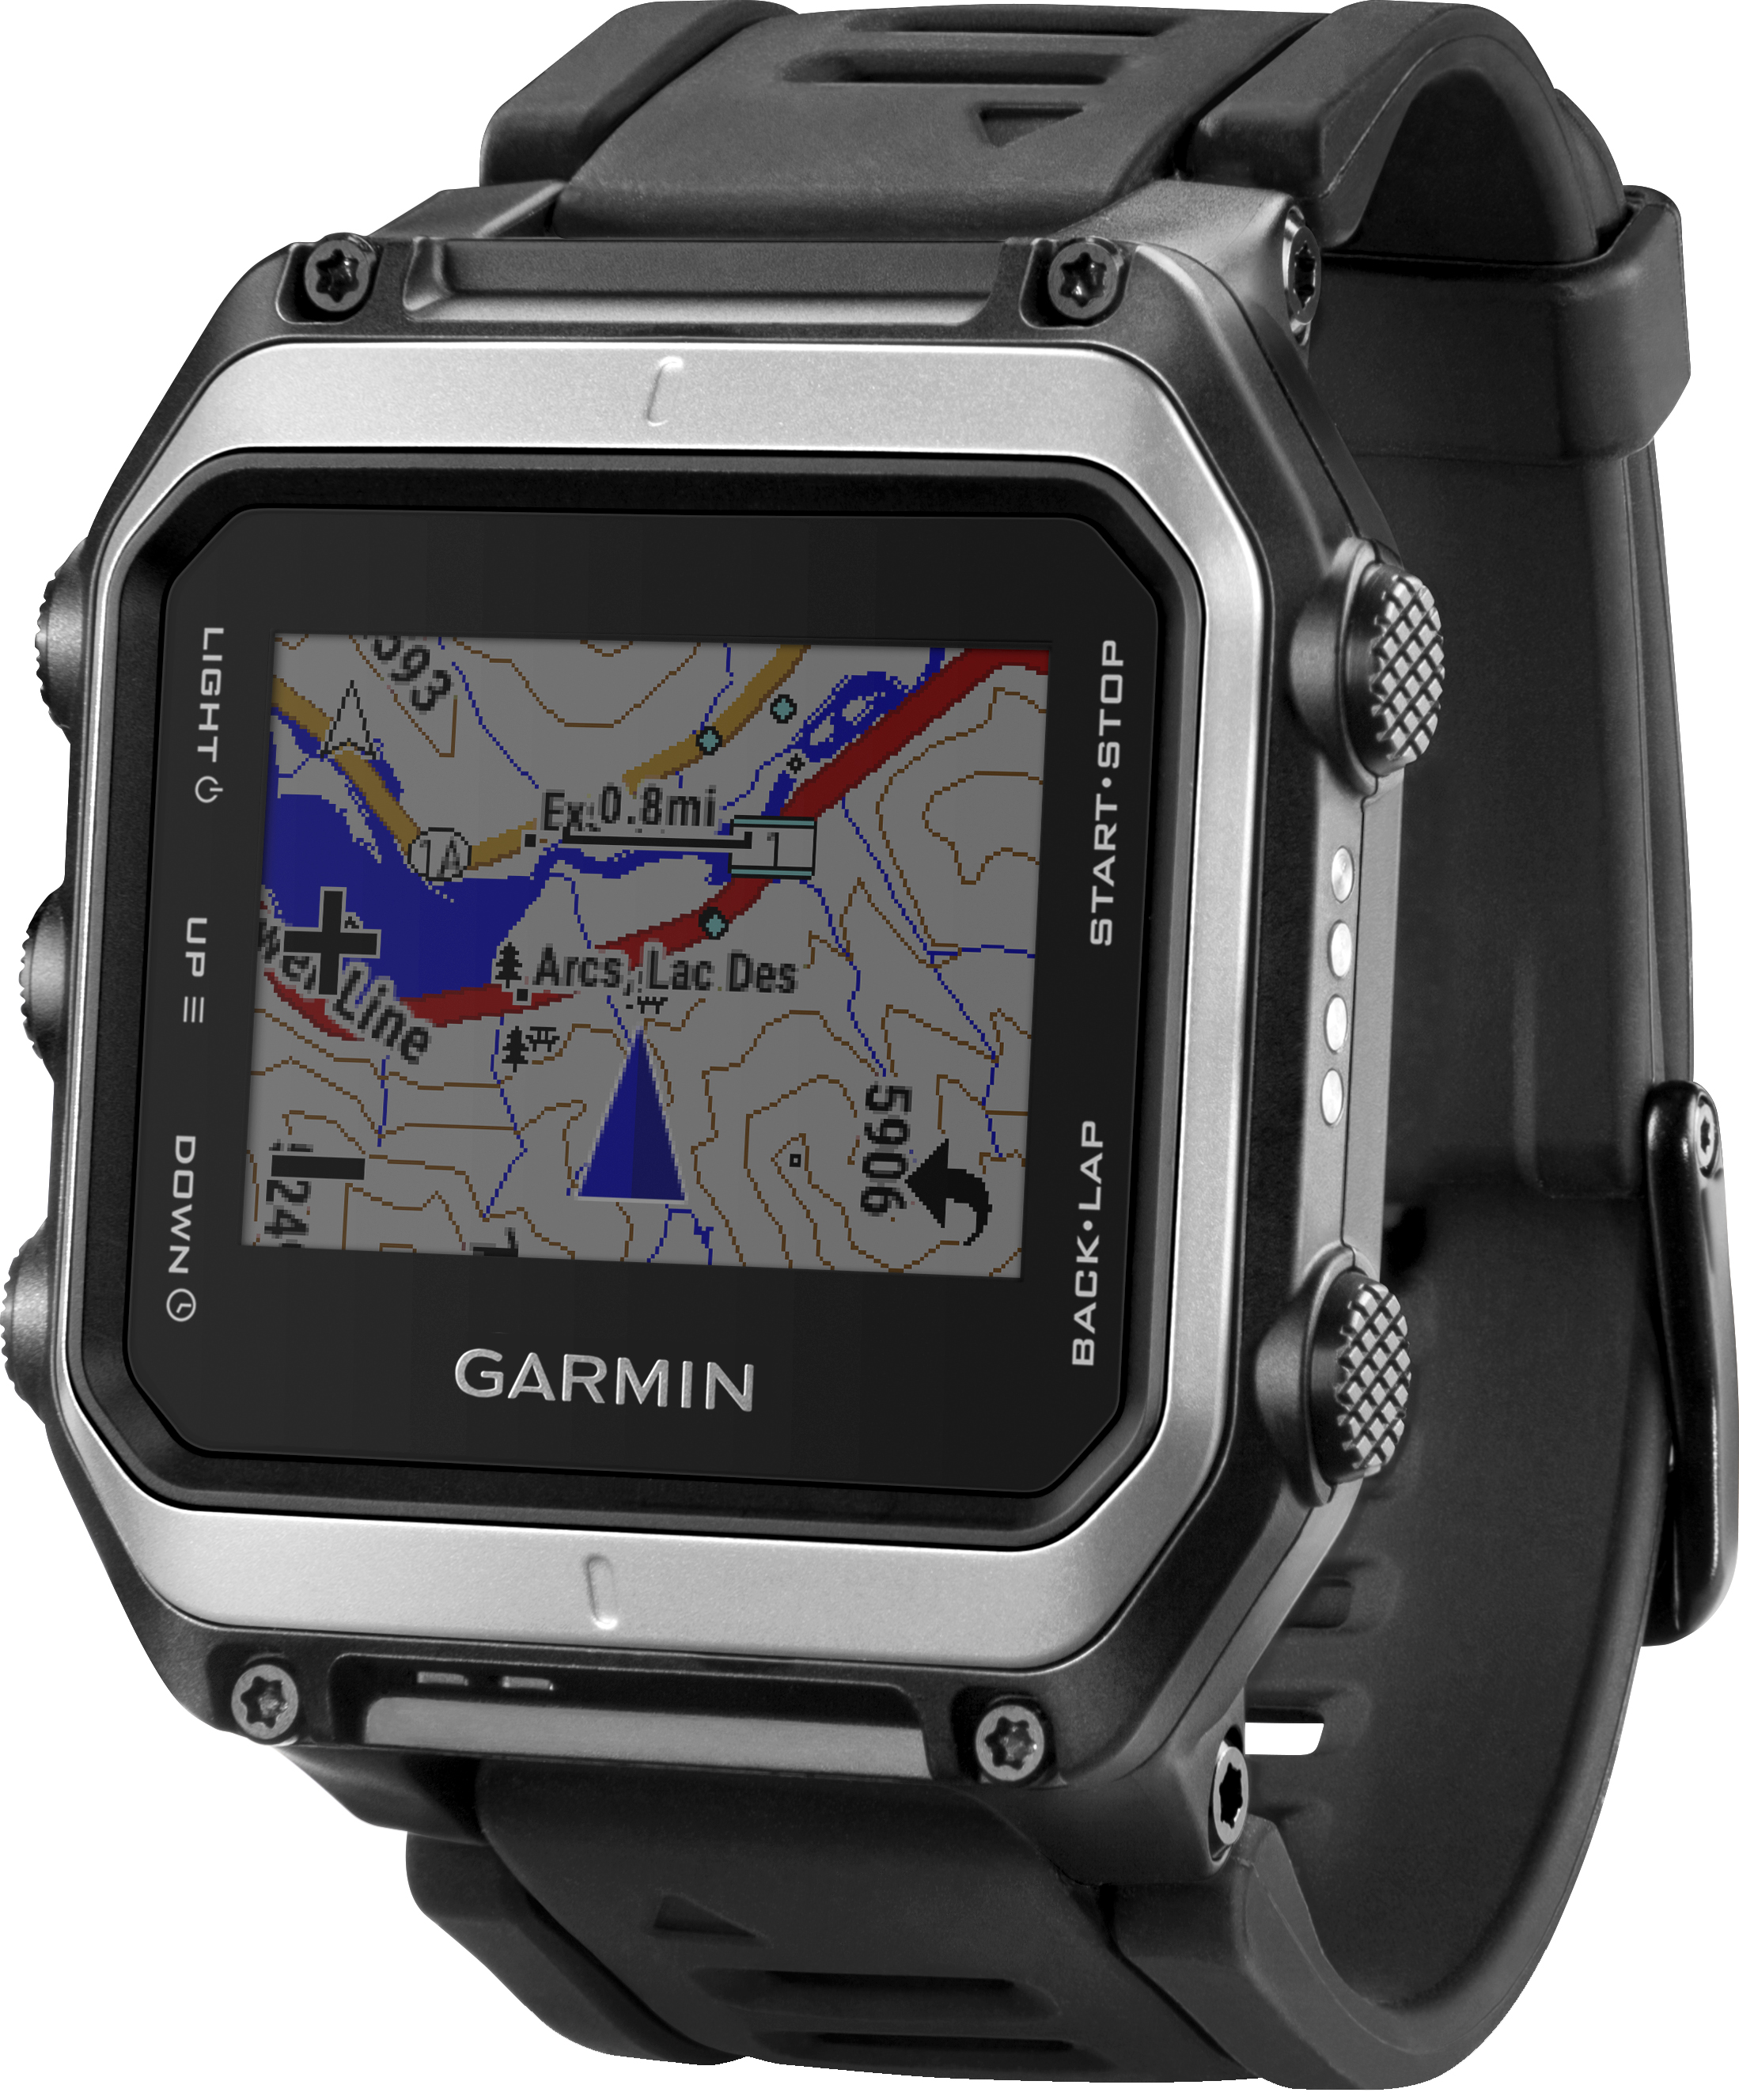 manufacturer dp watch phones touchscreen by rate monitor cell accessories garmin amazon discontinued forerunner ca gps heart watches without